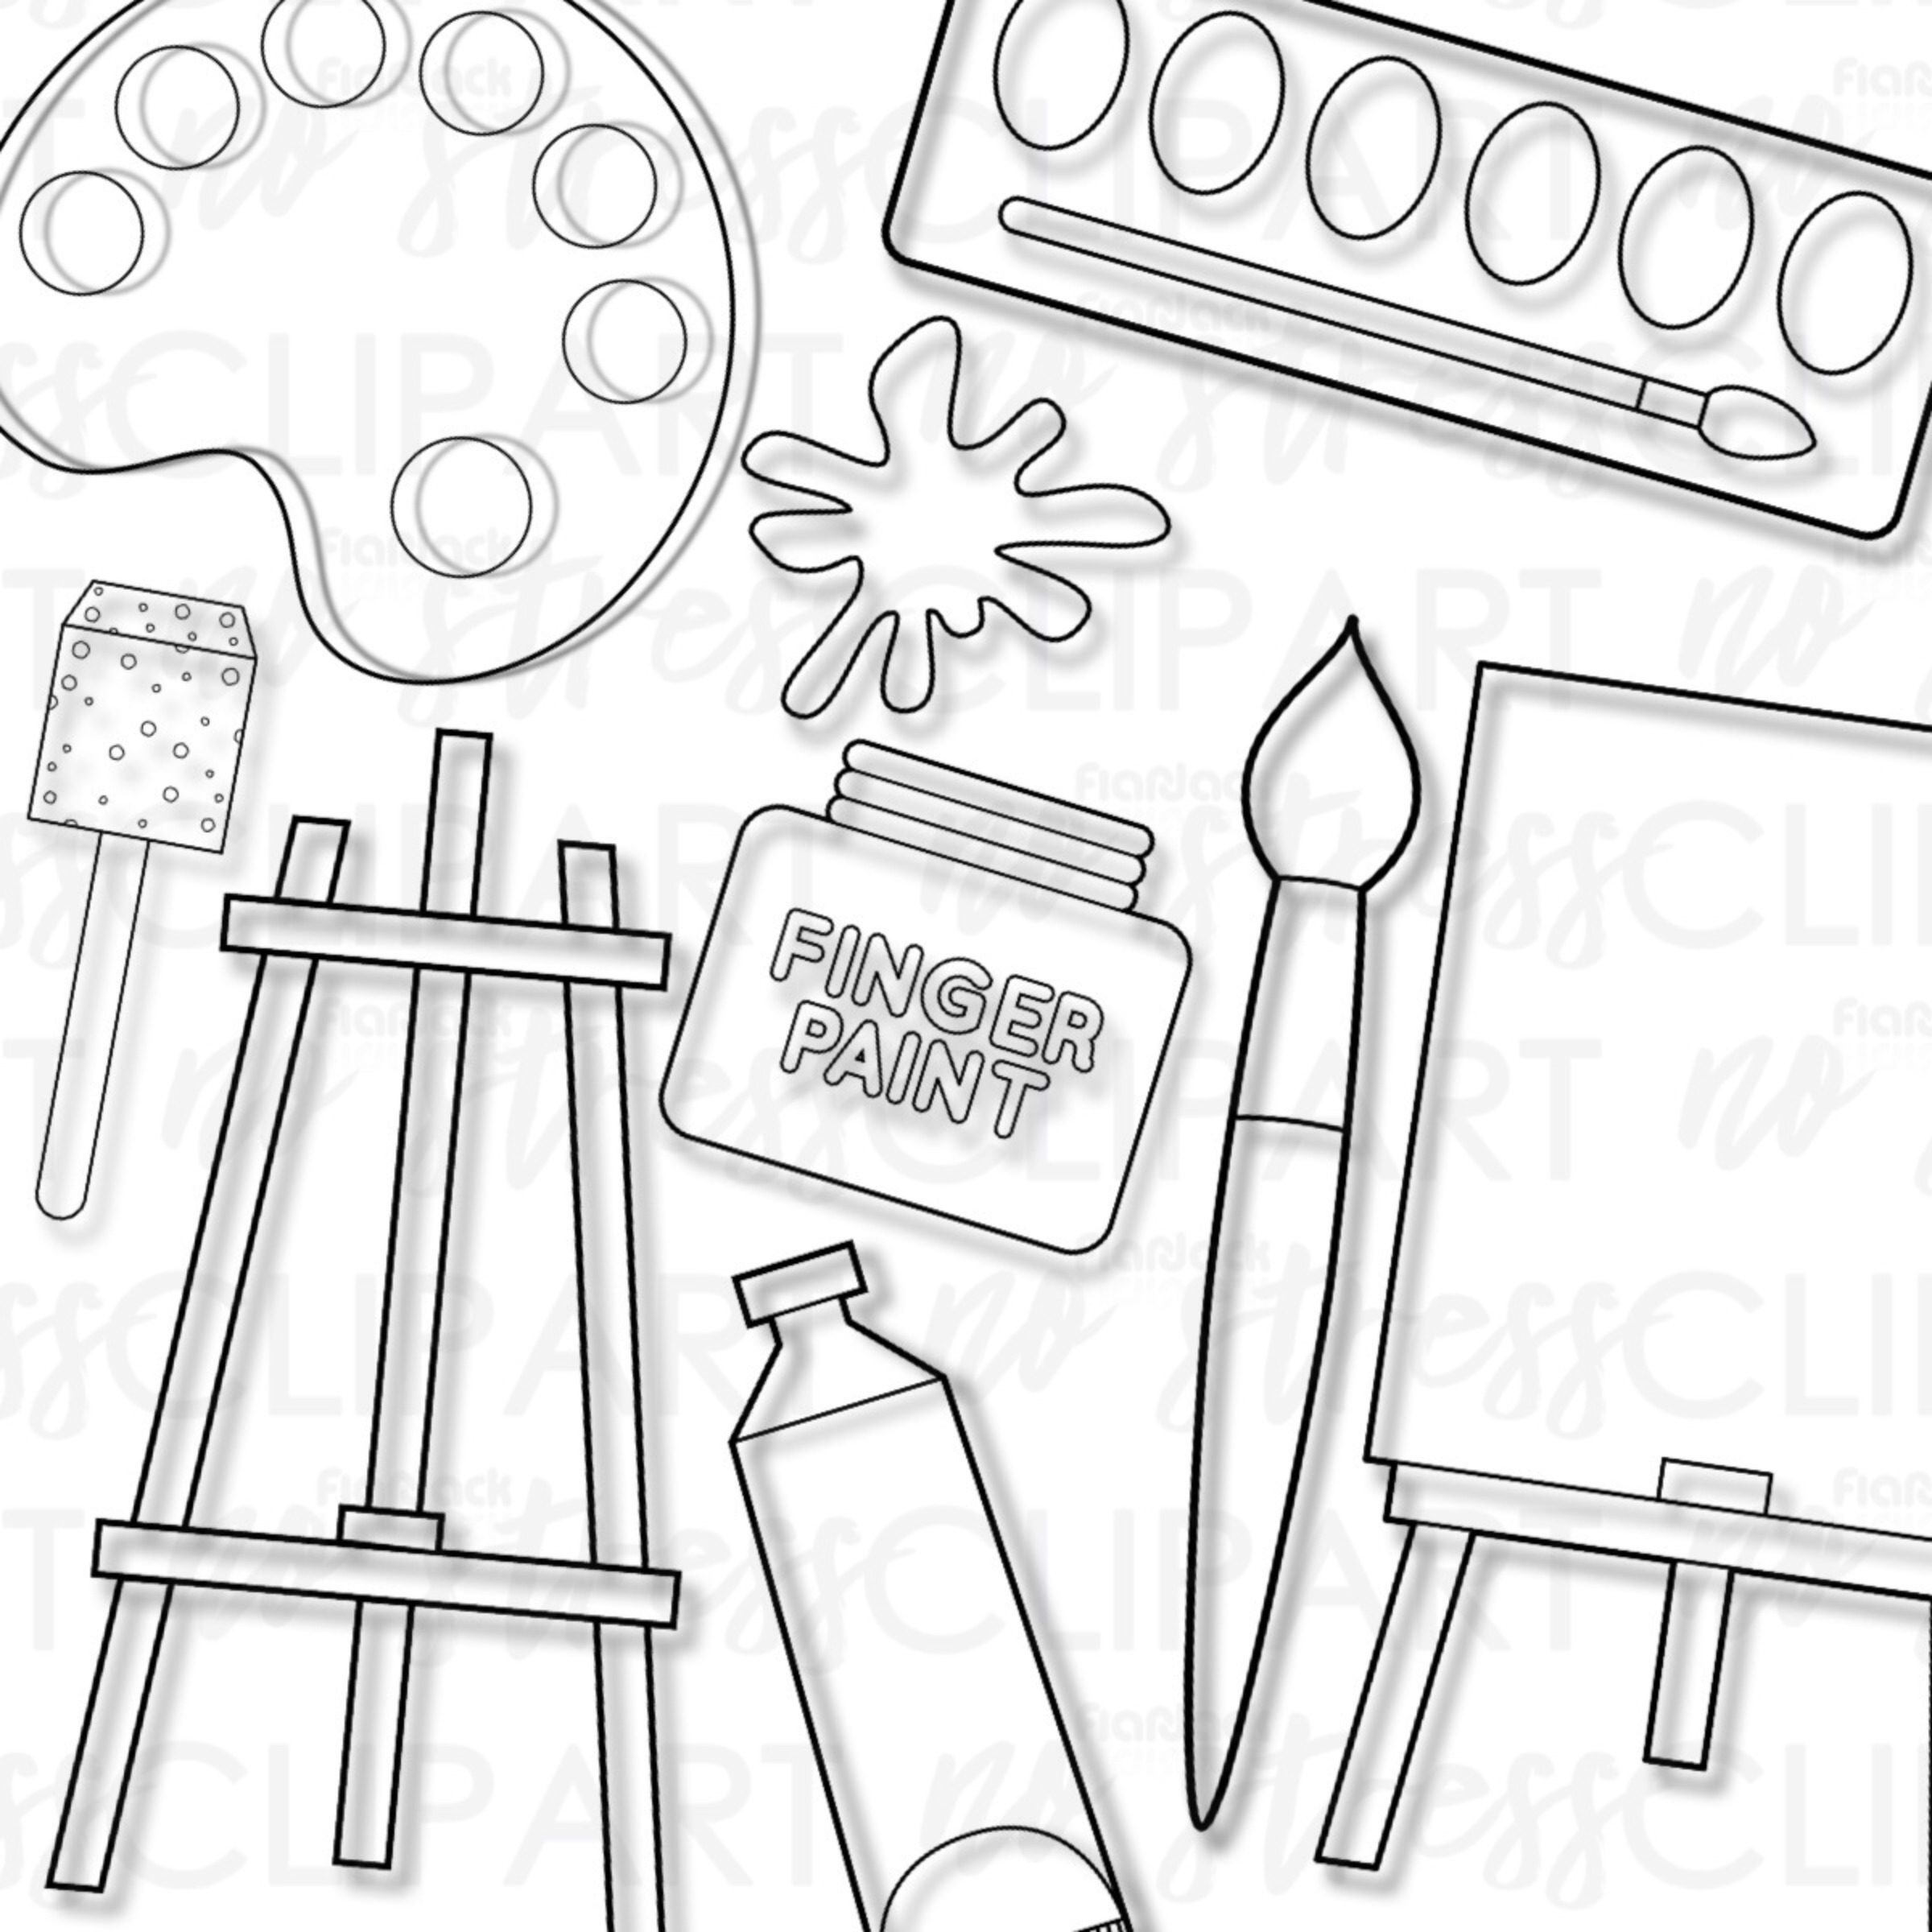 Painting Supplies (Bright Version)